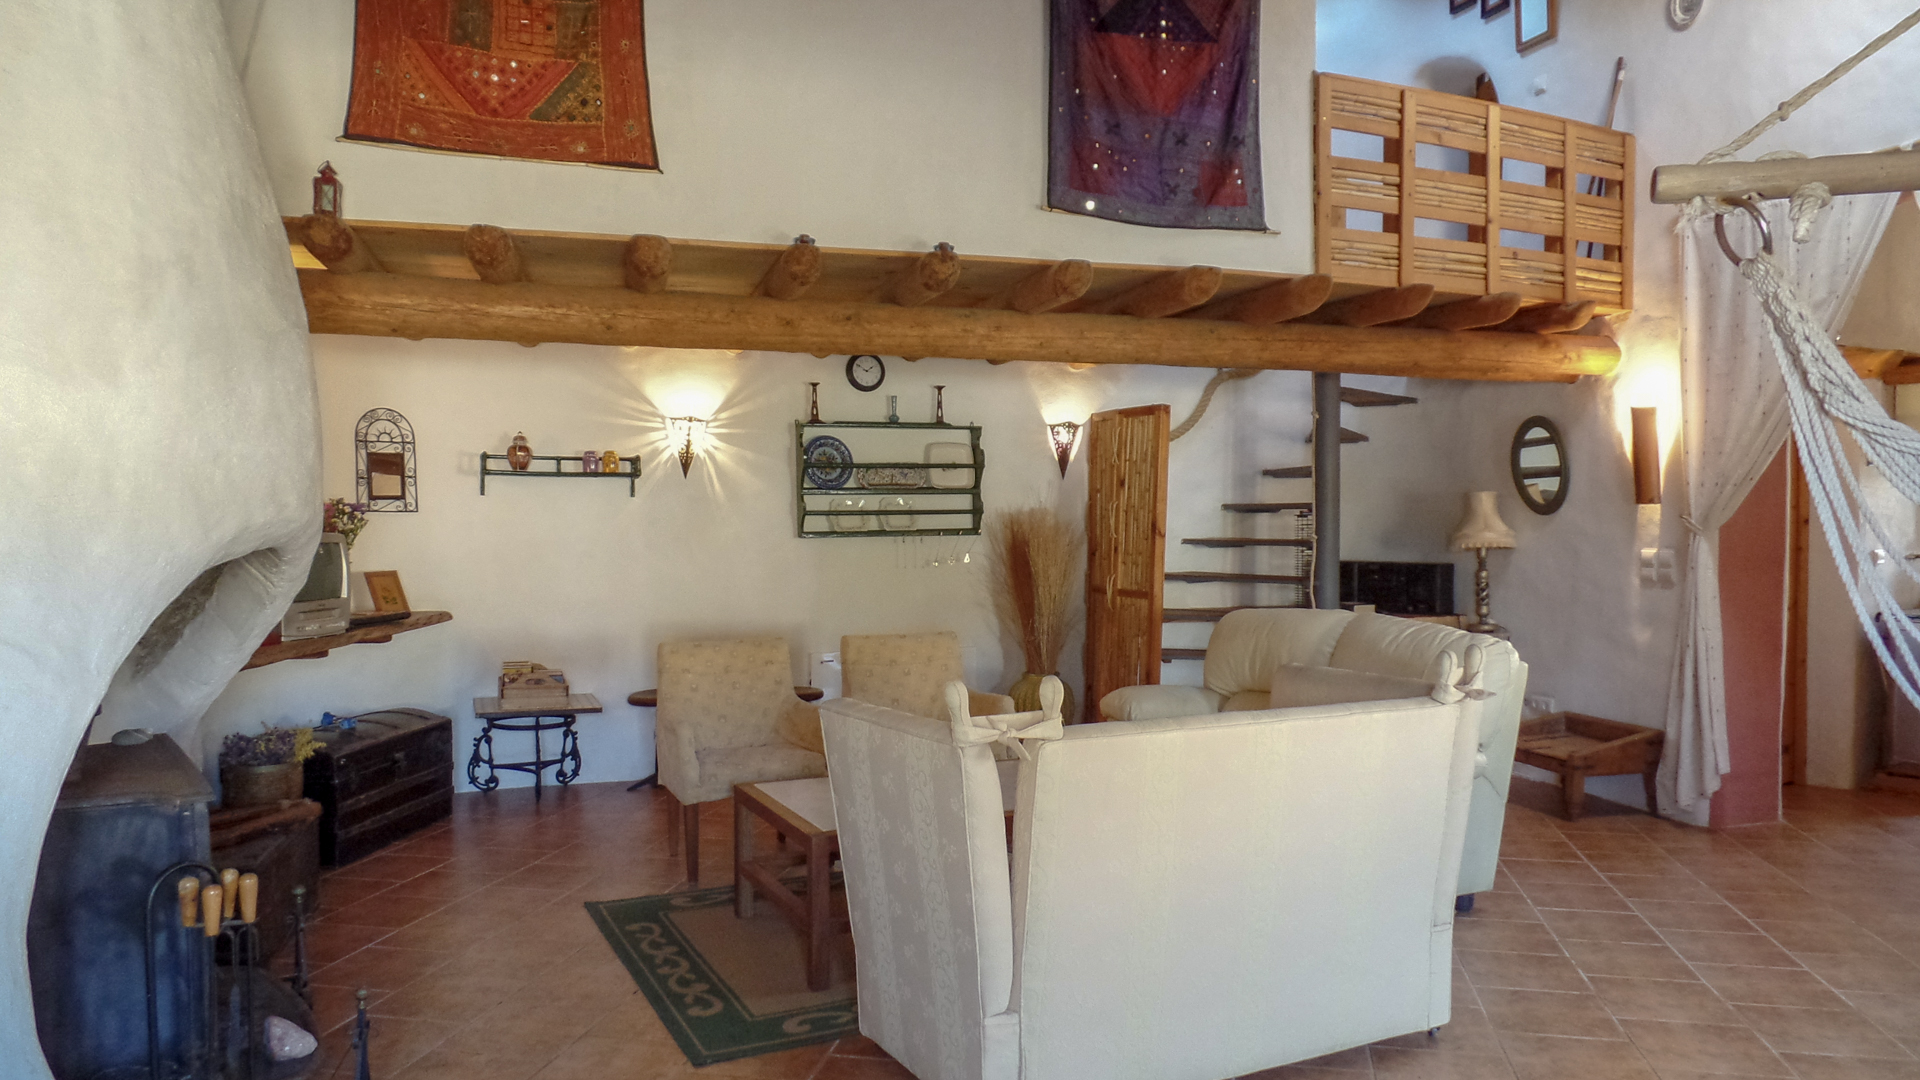 traditional portuguese house with 2 mezzanine bedrooms, located in bordeira, west coast